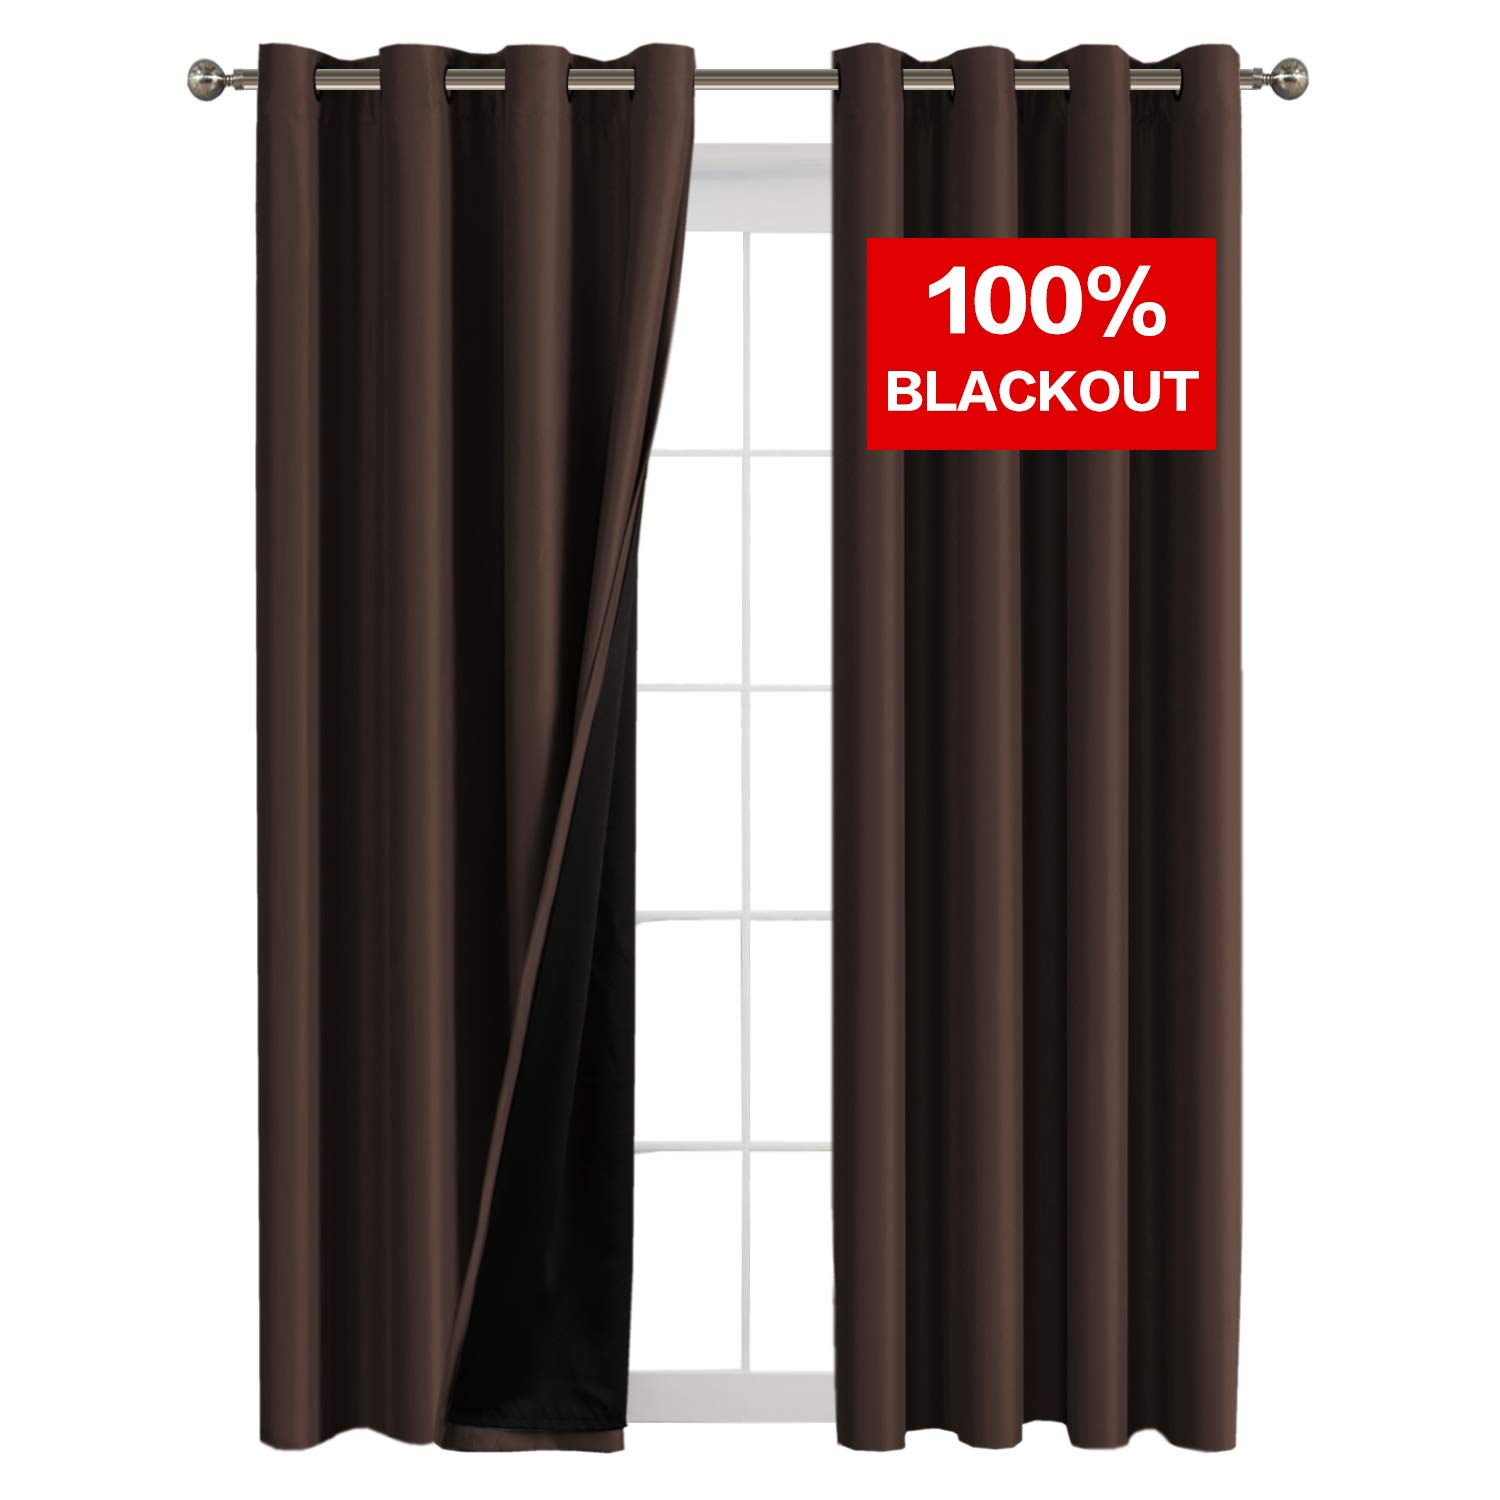 Flamingo P Full Blackout Brown Curtains Faux Silk Satin with Black Liner Thermal Insulated Window Treatment Panels, Grommet Top (52 x 108 Inch, Set of 2)